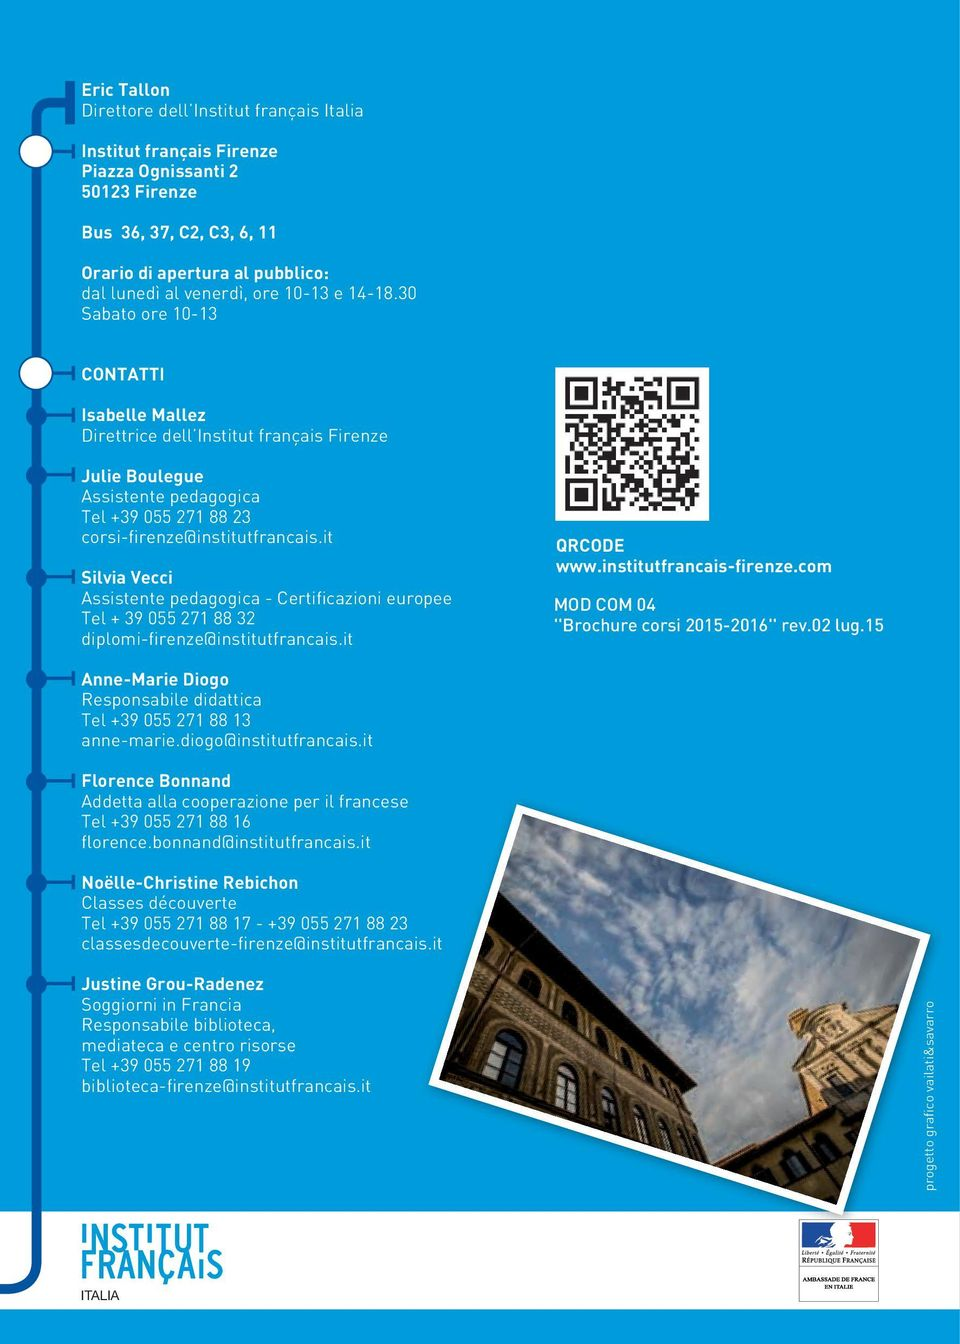 it Silvia Vecci Assistente pedagogica - Certificazioni europee Tel + 39 055 271 88 32 diplomi-firenze@institutfrancais.it QRCODE www.institutfrancais-firenze.